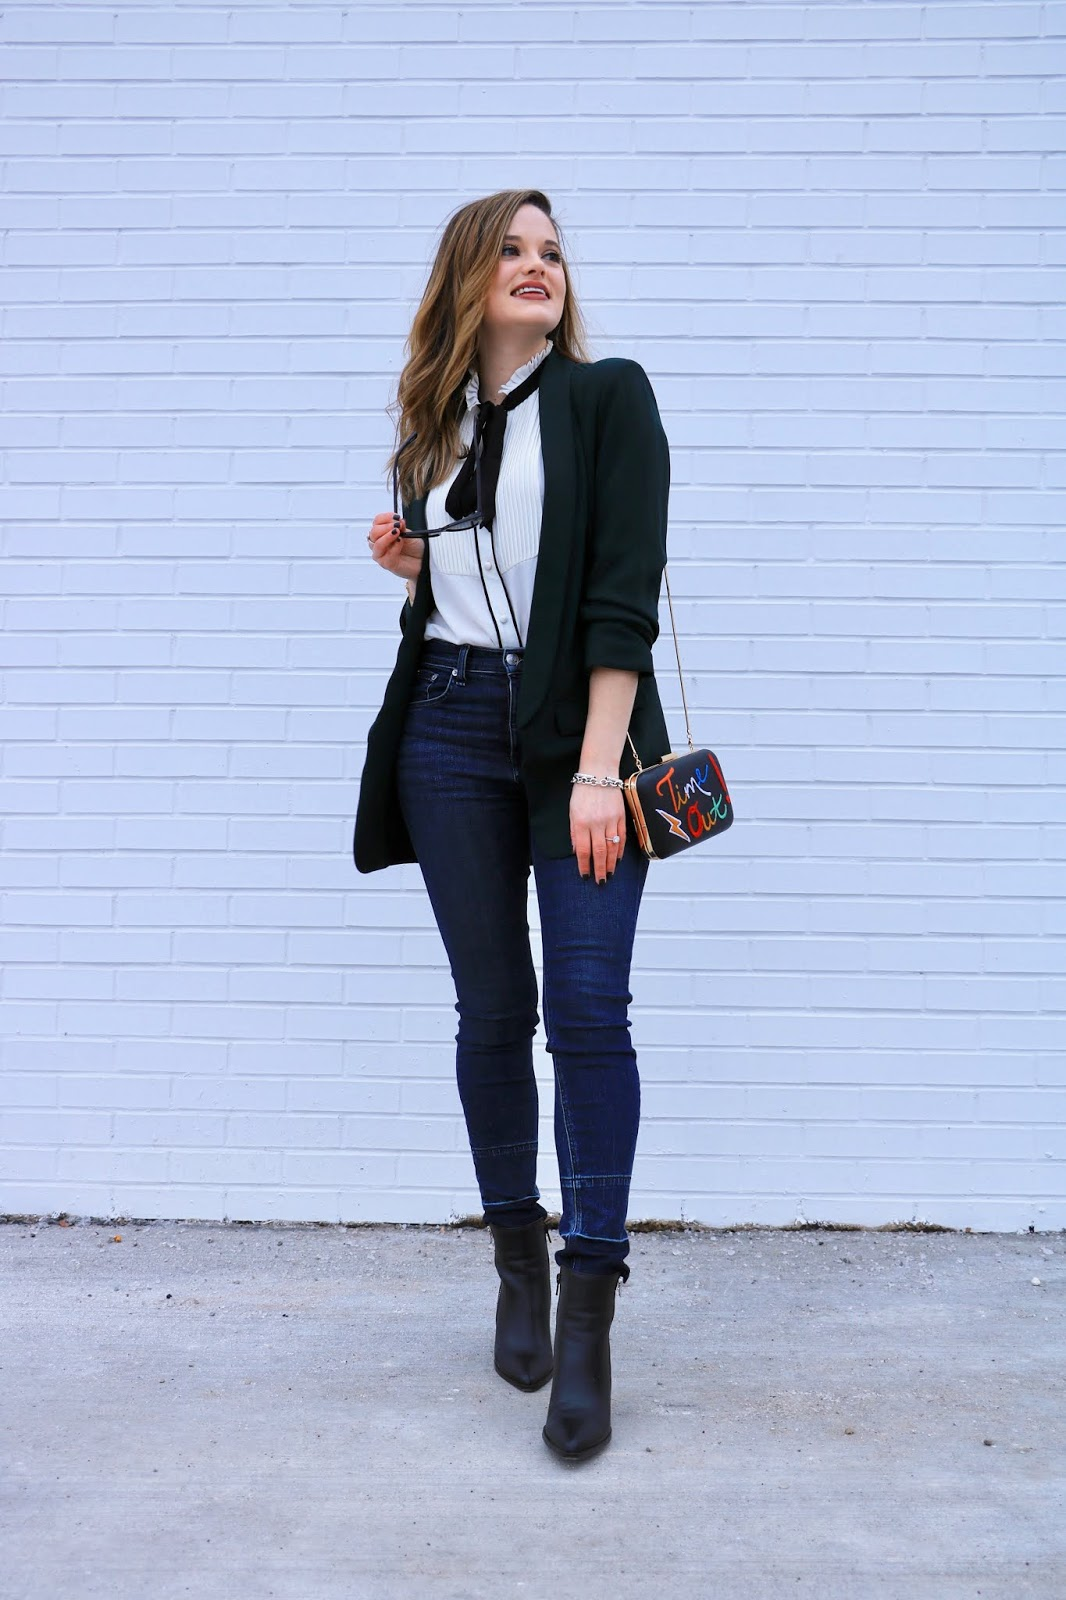 Nyc fashion blogger Kathleen Harper showing how to wear skinny jeans to work.